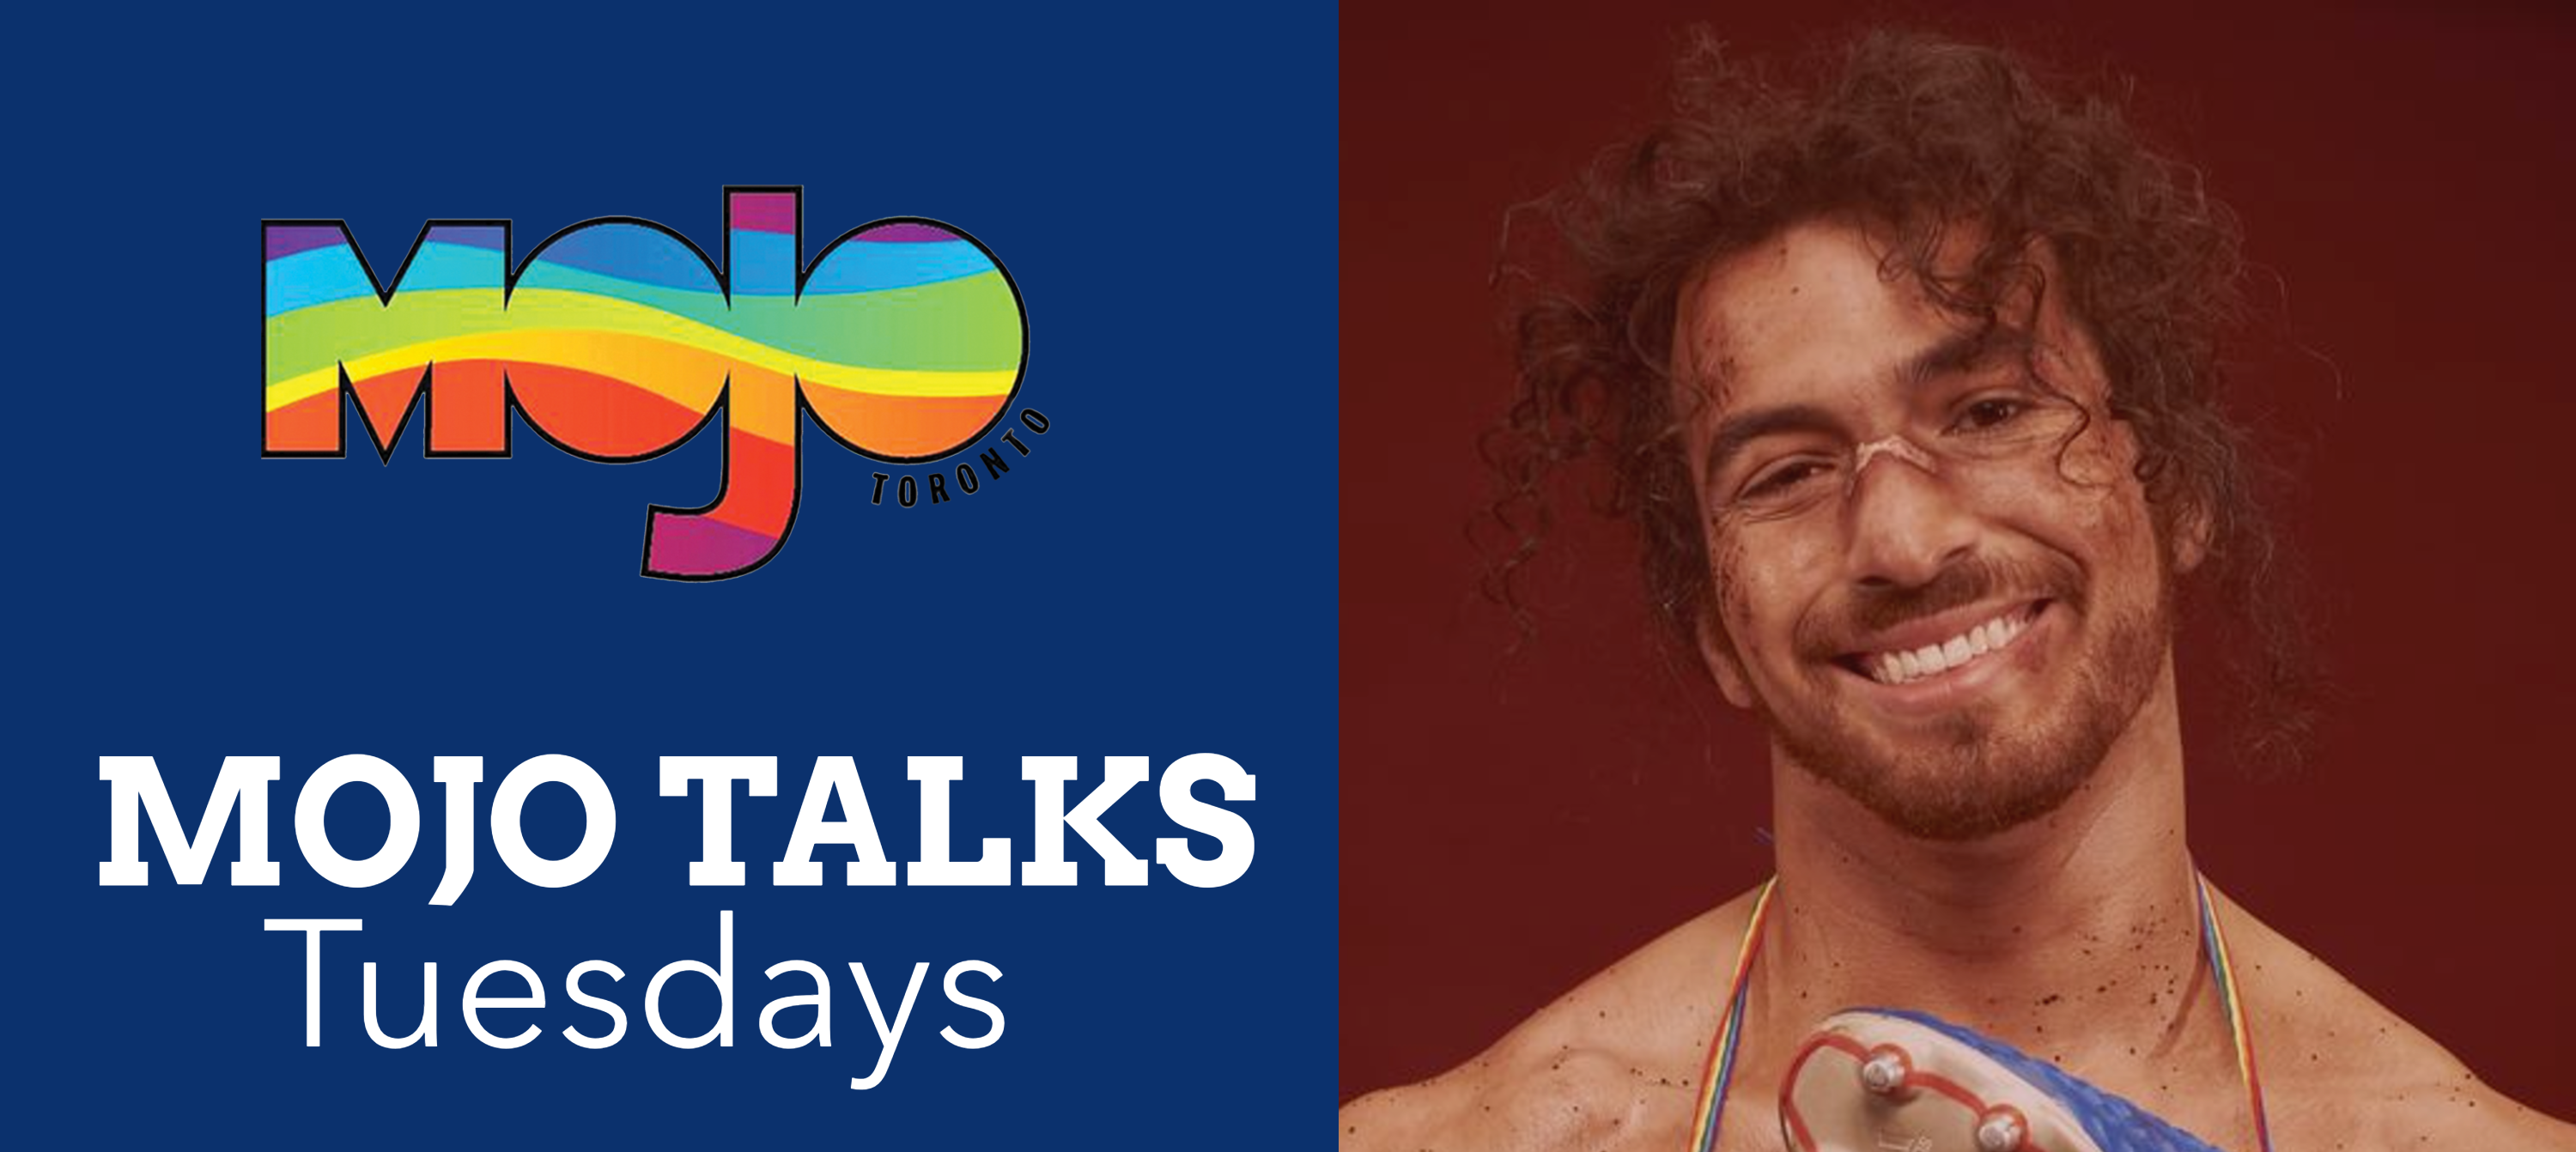 MOJO Talks Tuesdays (E2): Talking with Devin Ibañez – Major League Rugby's first openly gay player!